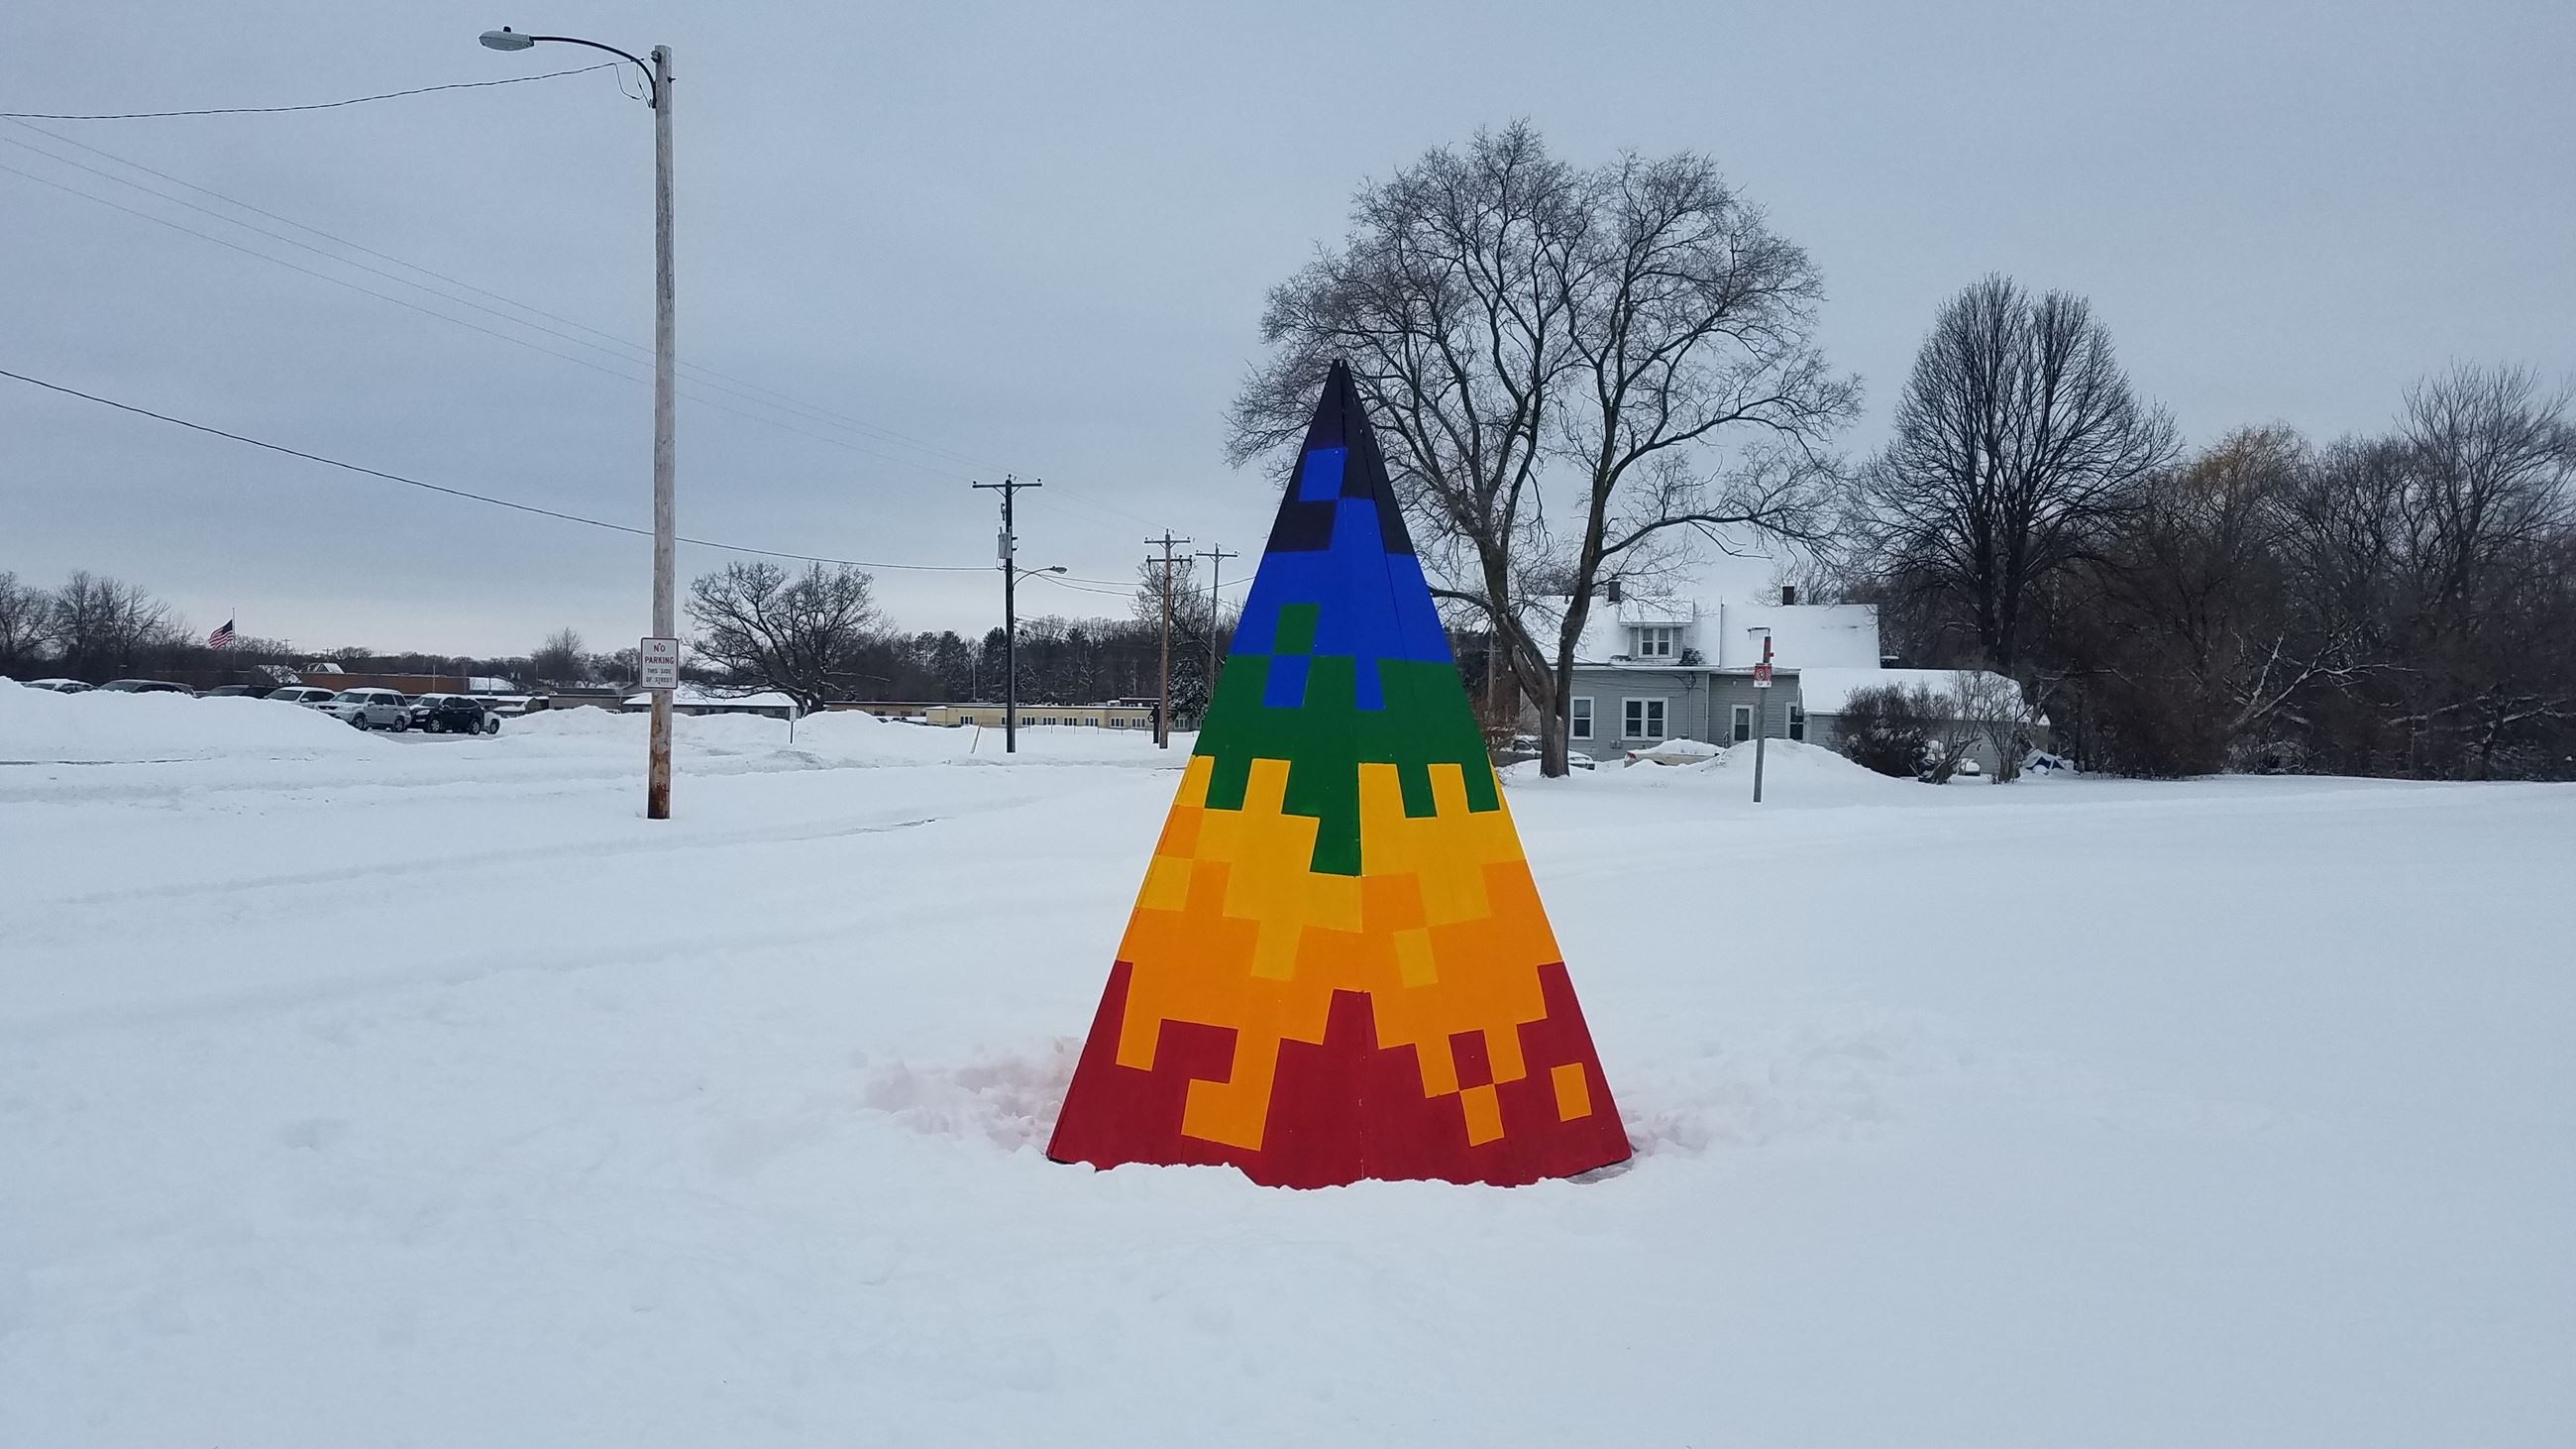 Rainbow pyramid sculpture located at Fisk and Dousman, created by Malachi Duffey.